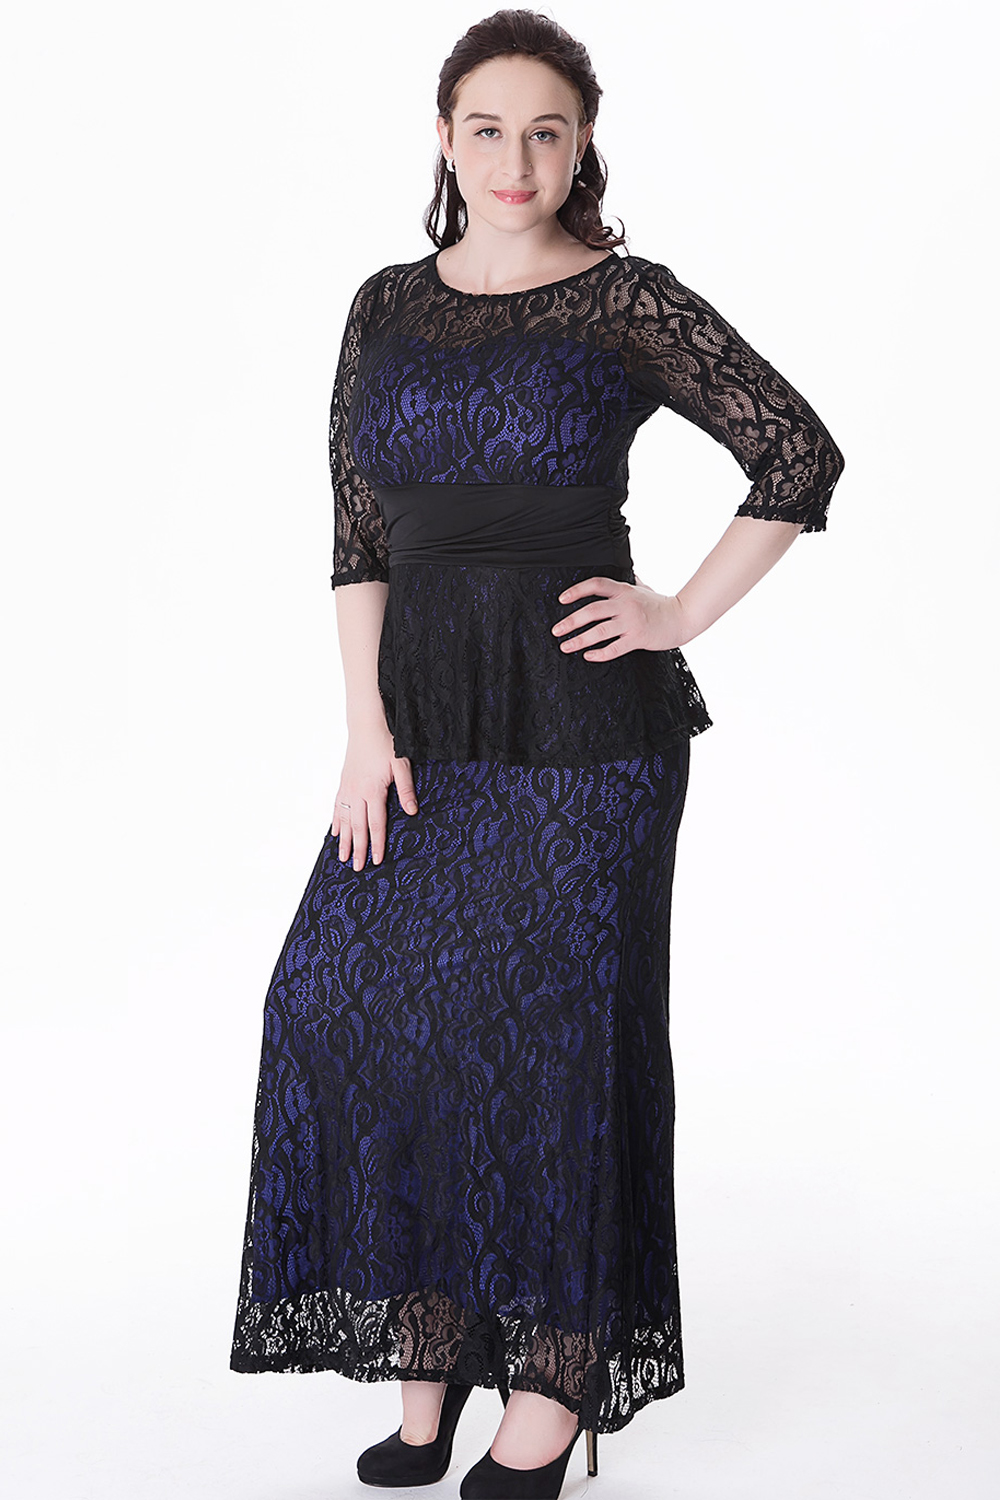 US $37.61  Women Party Dress Plus Size XL 6XL Hollow Out Lace Dress  Bohemian Style Robe Femme Mesh Lolita Summer Evening Party Dresses-in  Dresses from ...